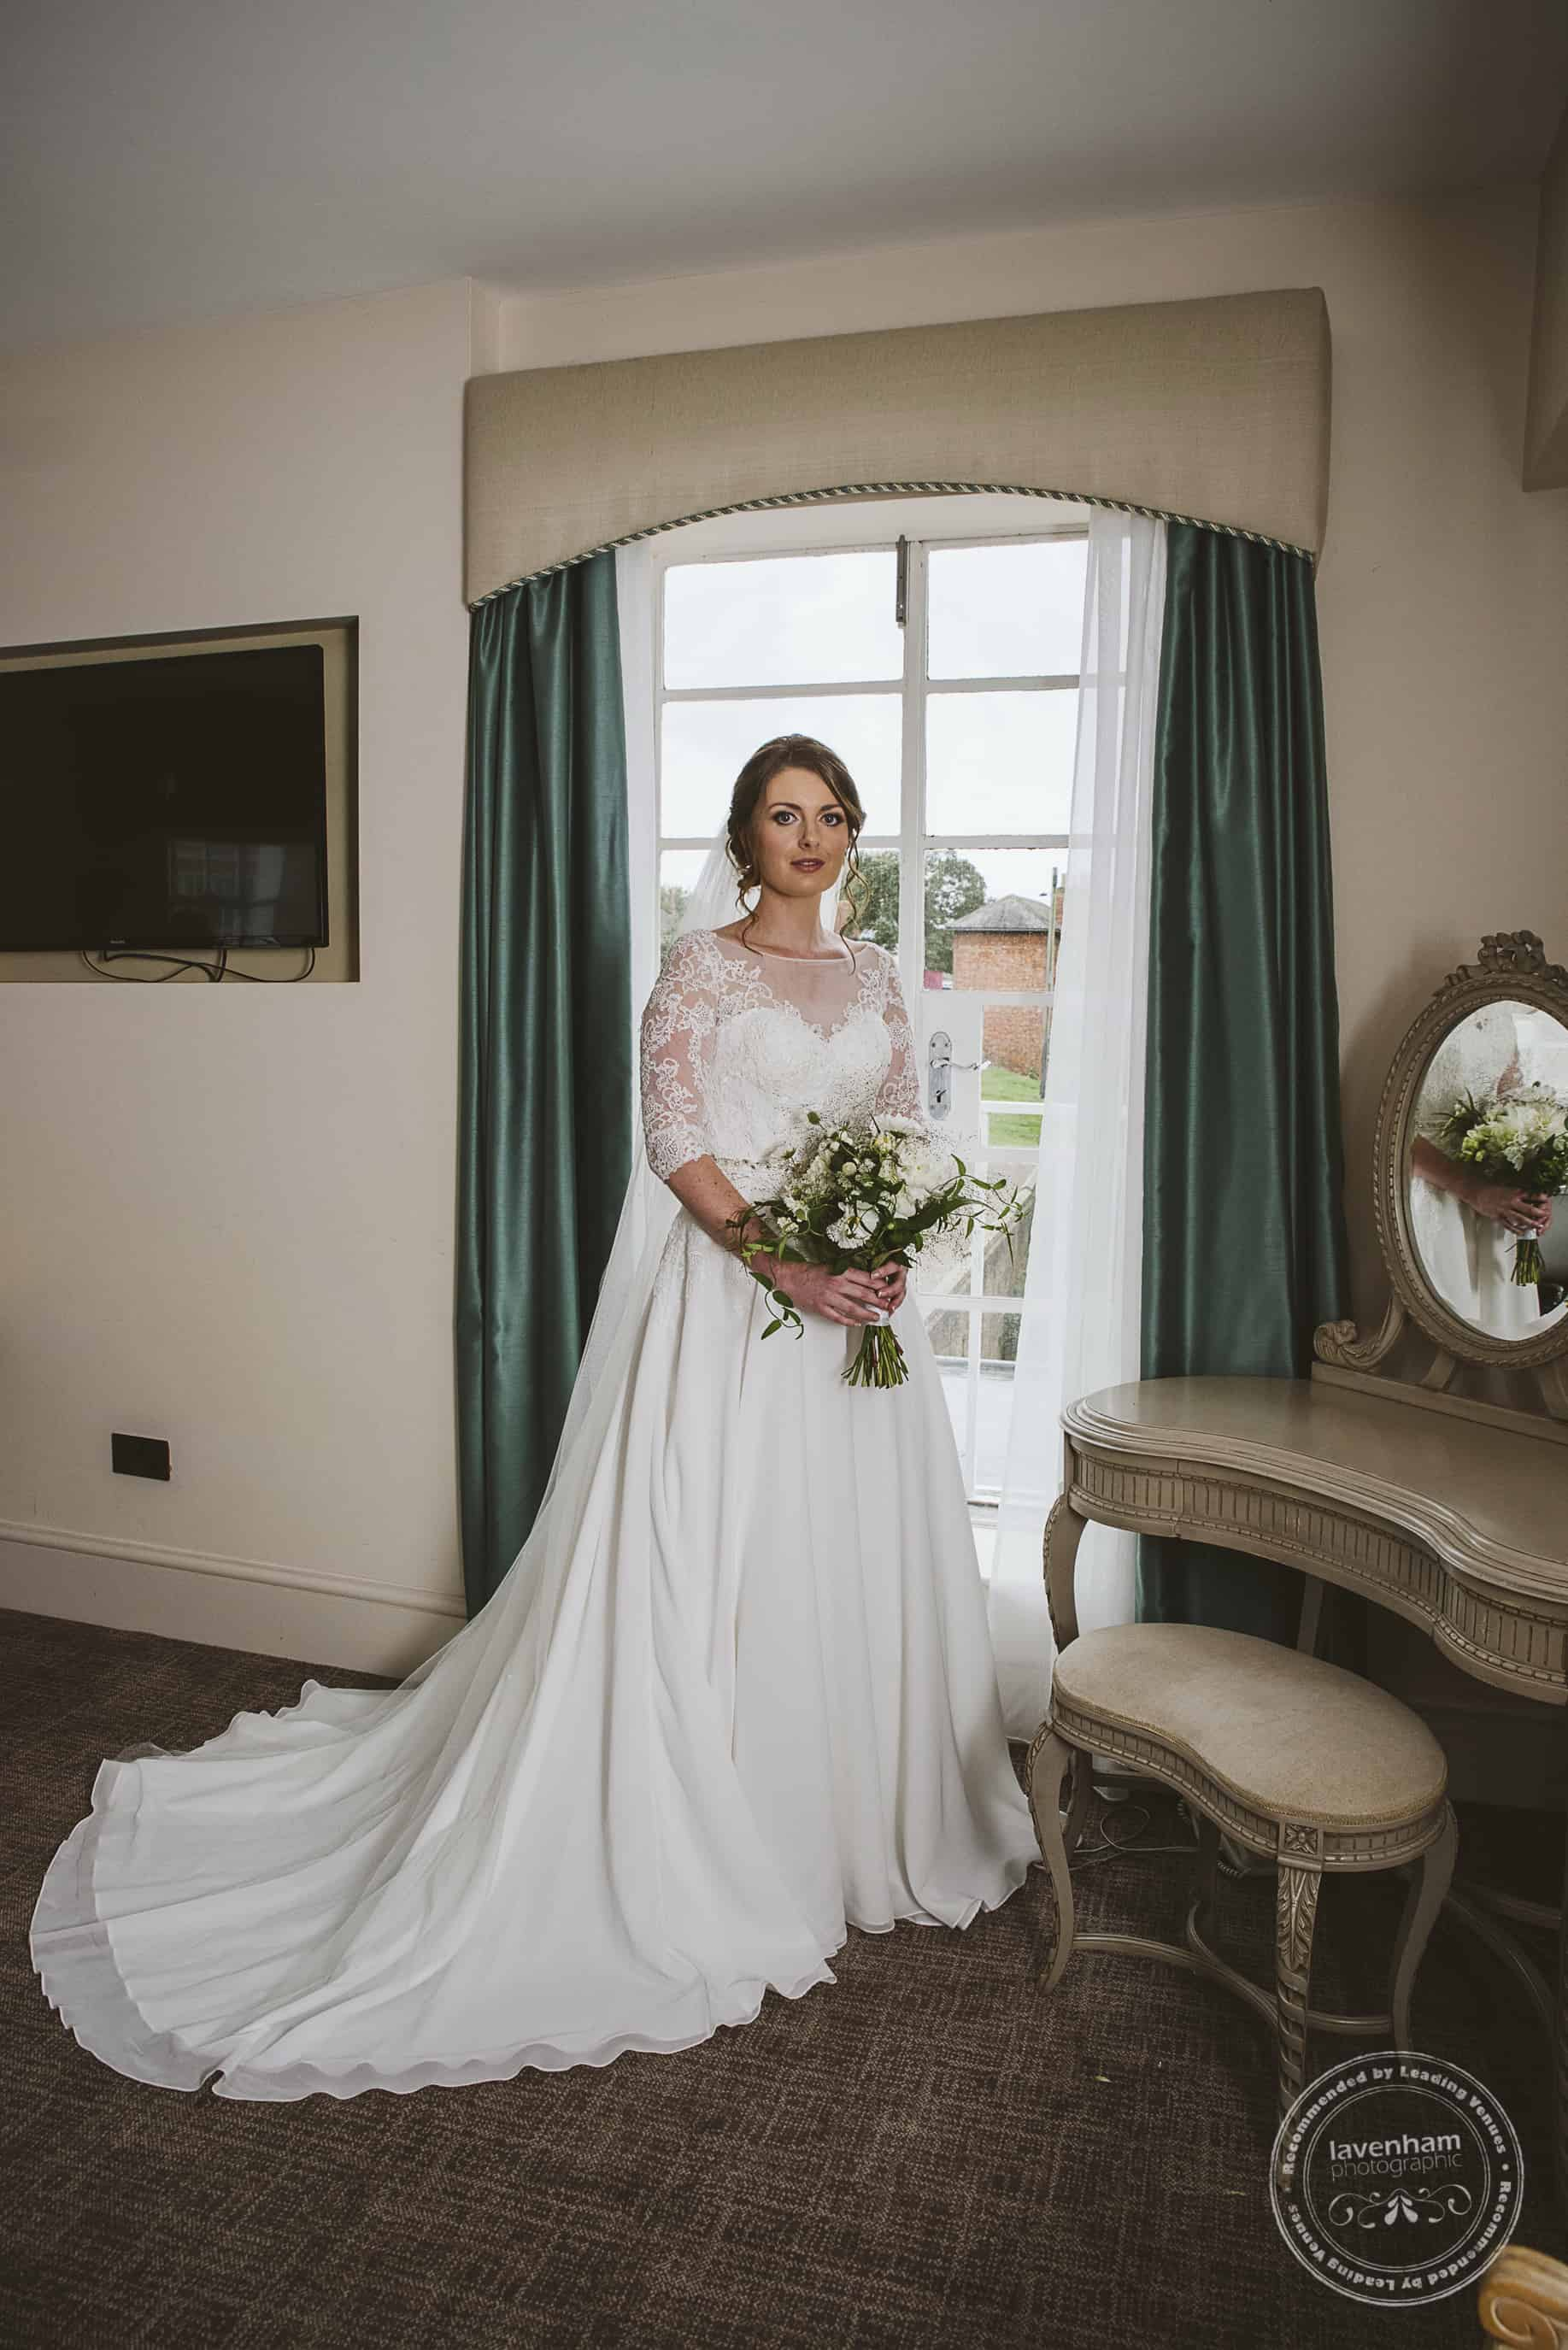 220918 Alpheton Barn Wedding Photography by Lavenham Photographic 018